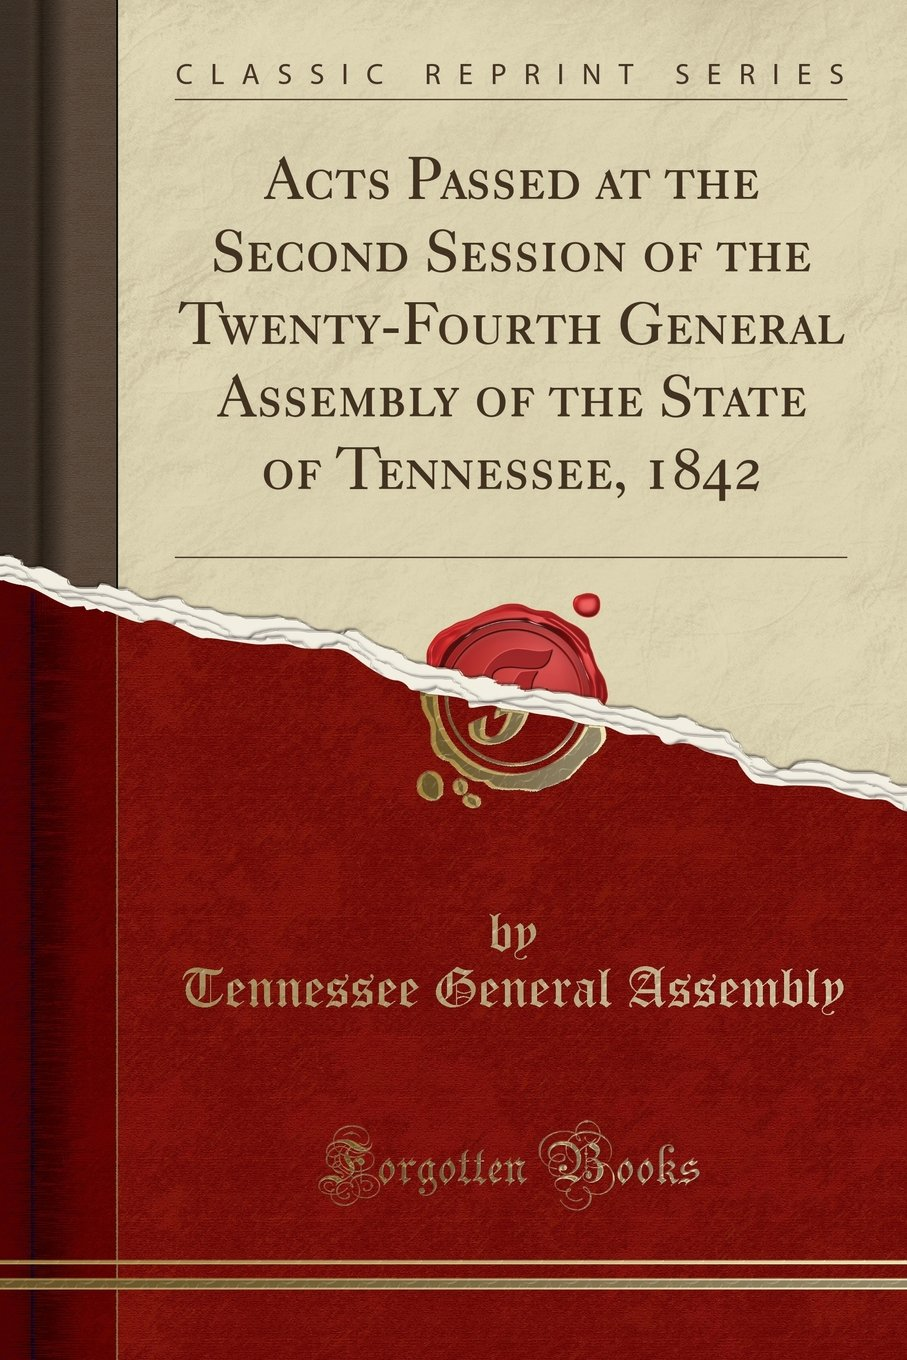 Acts Passed at the Second Session of the Twenty-Fourth General Assembly of the State of Tennessee, 1842 (Classic Reprint) ebook